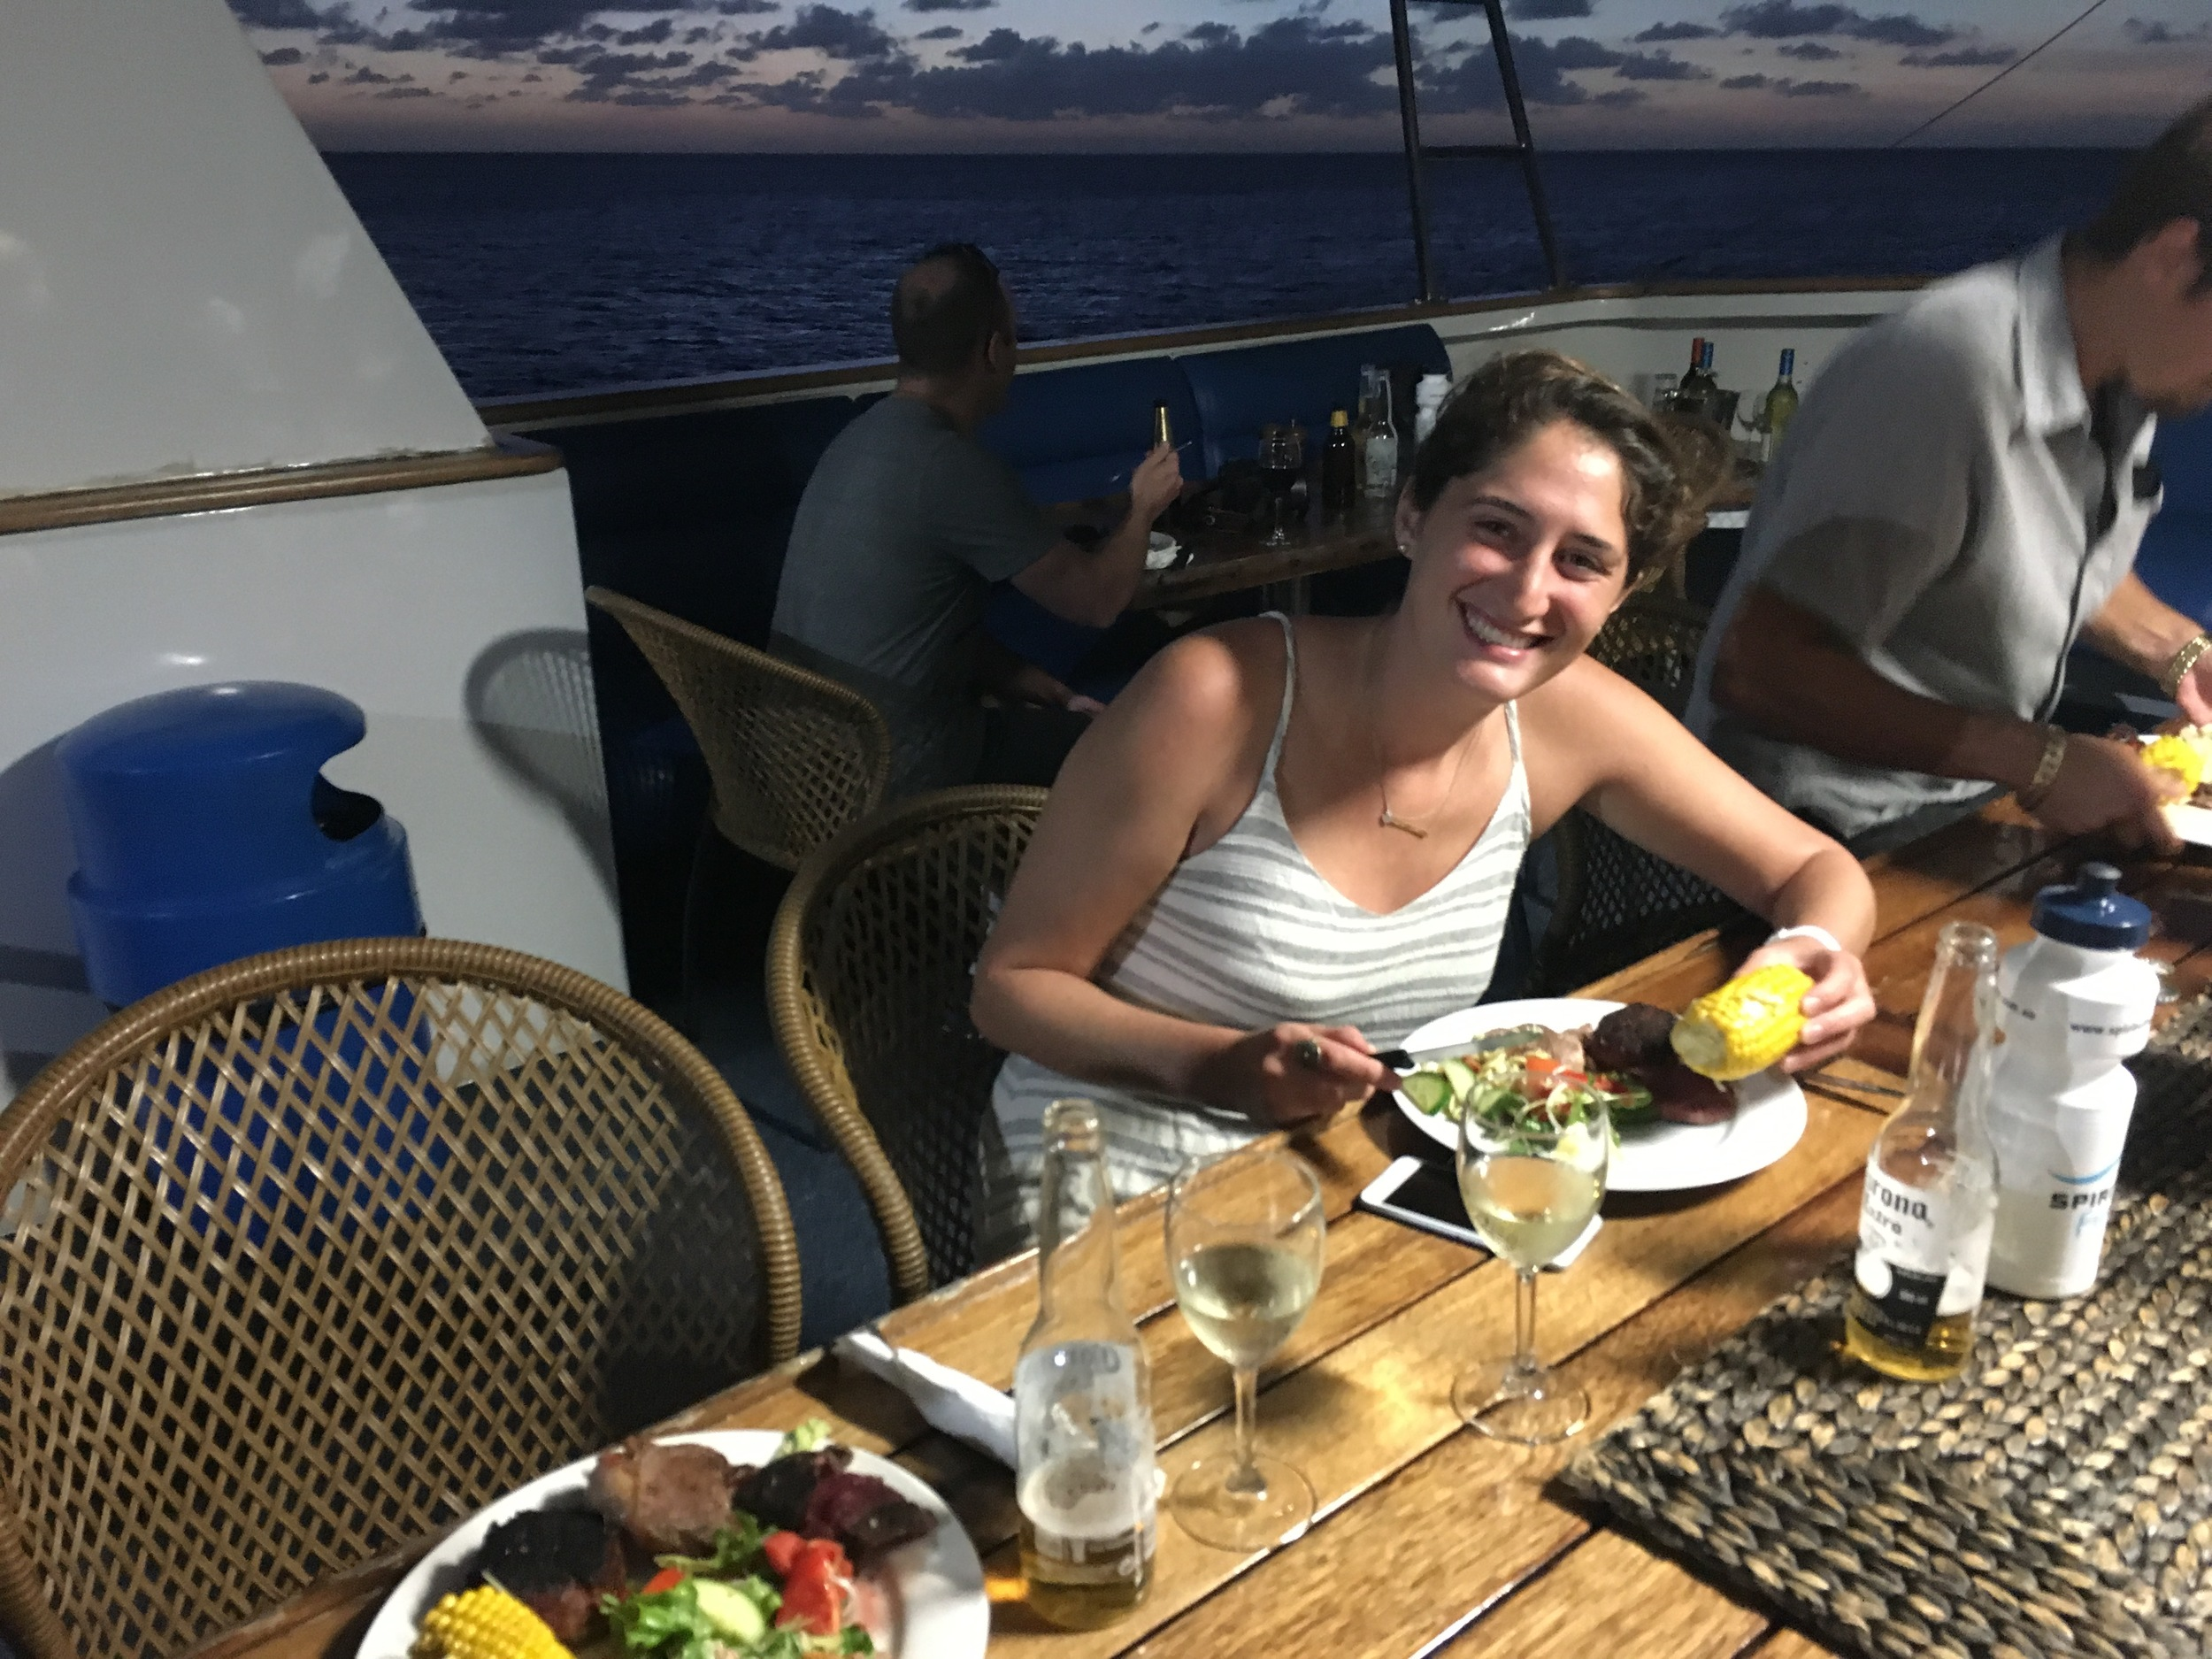 Final night BBQ on the boat